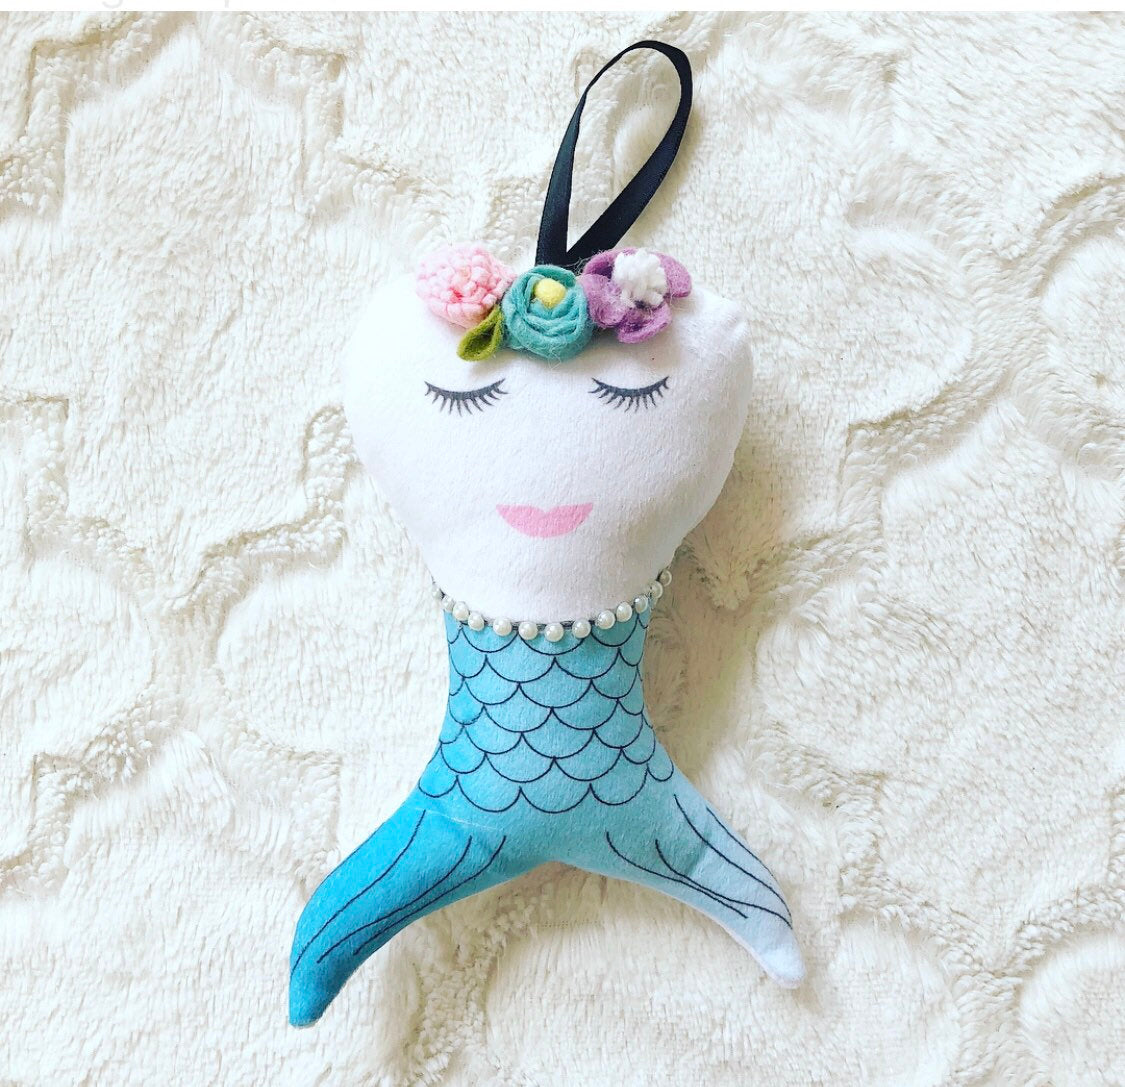 Tooth Pillow Mermaid Girl or Boy, With Pearl Necklace, Free To Personalize, Pouch  in back, Christmas Gift, Stocking Stuffer,